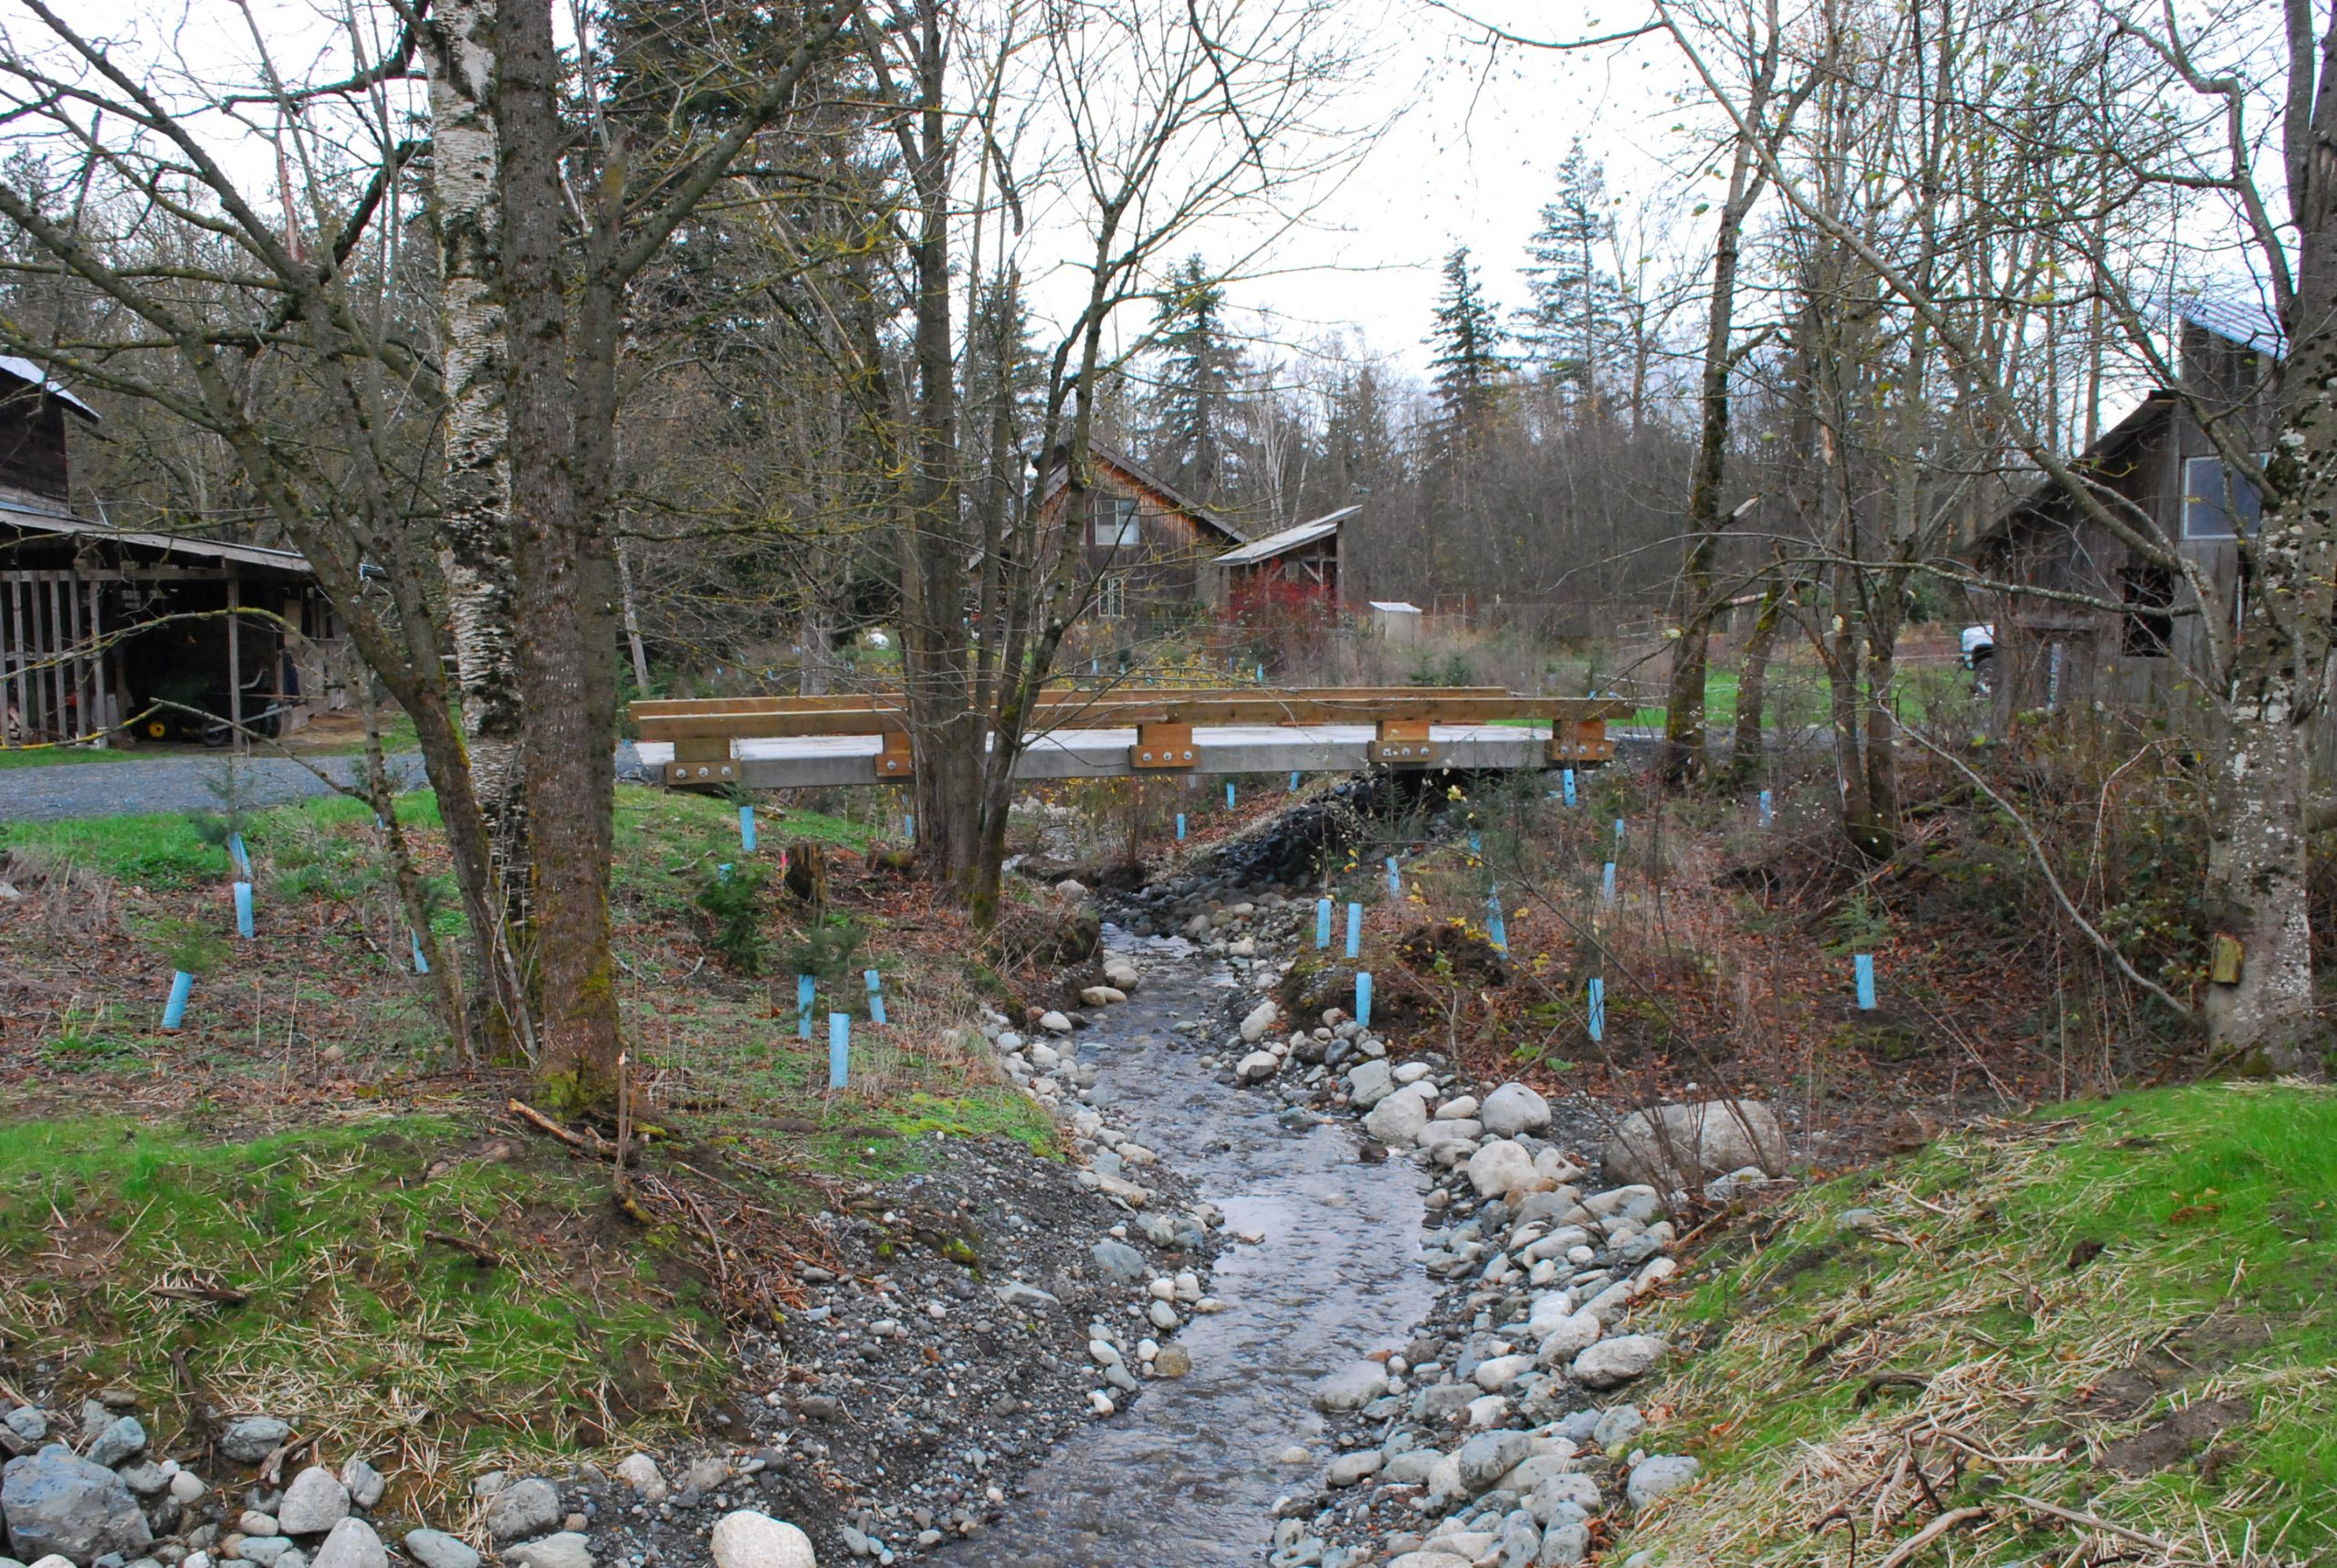 A rocky stream runs freely underneath a new bridge with a low guard rail. Tall trees on both banks are interspersed with blue plant guards marking new plants. Three buildings with peaked roofs are int he background among trees.